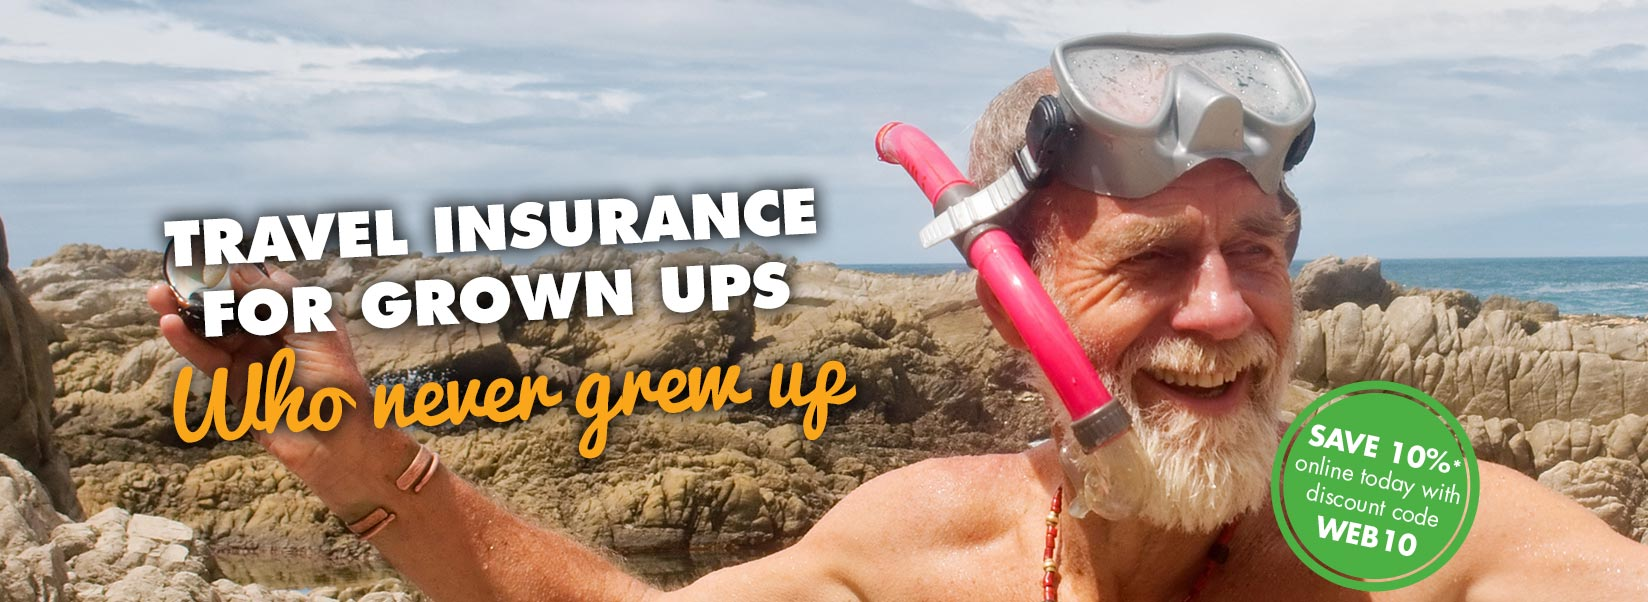 Travel insurance for grown ups who never grew up